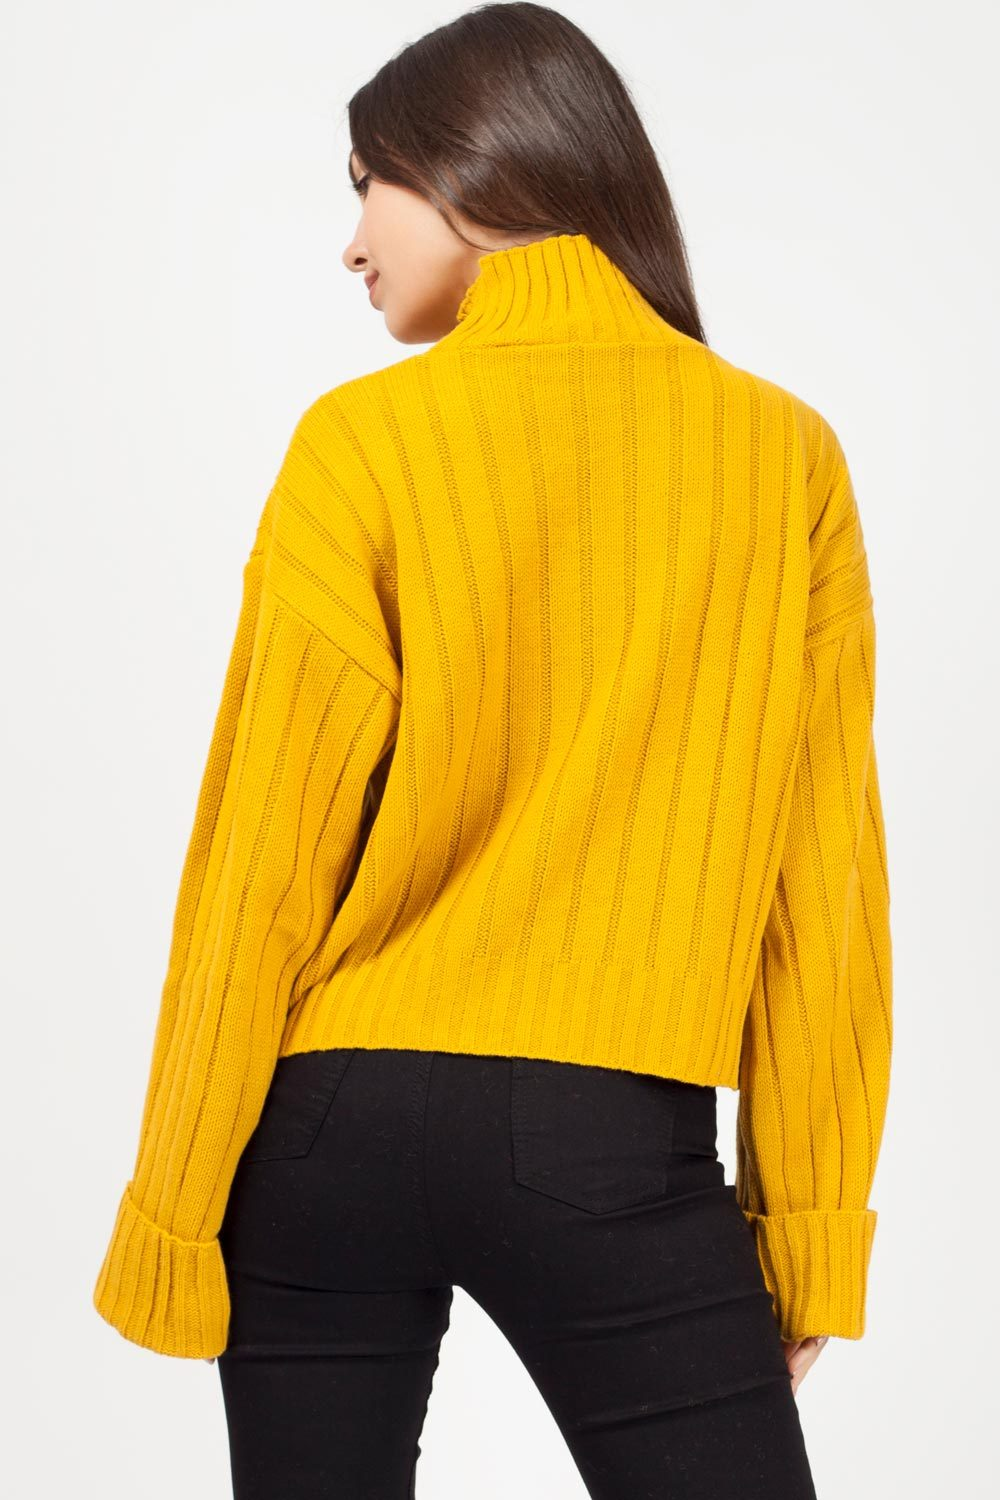 mustard oversized jumper uk